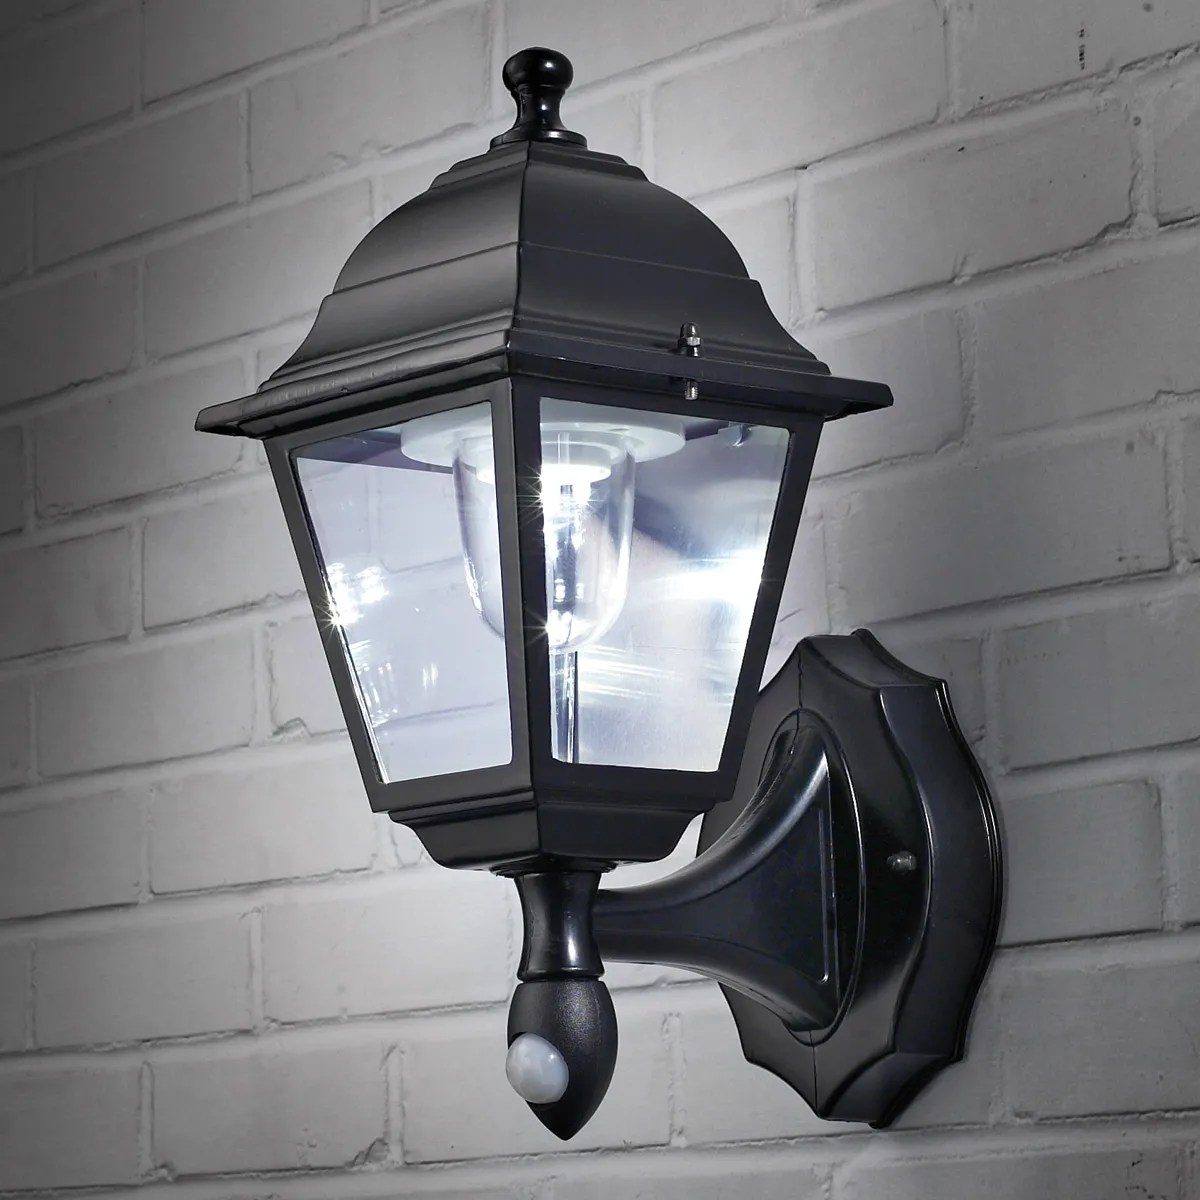 Battery Operated Wall Sconce Lighting Wireless Motion Activated Outdoor Wall Sconce